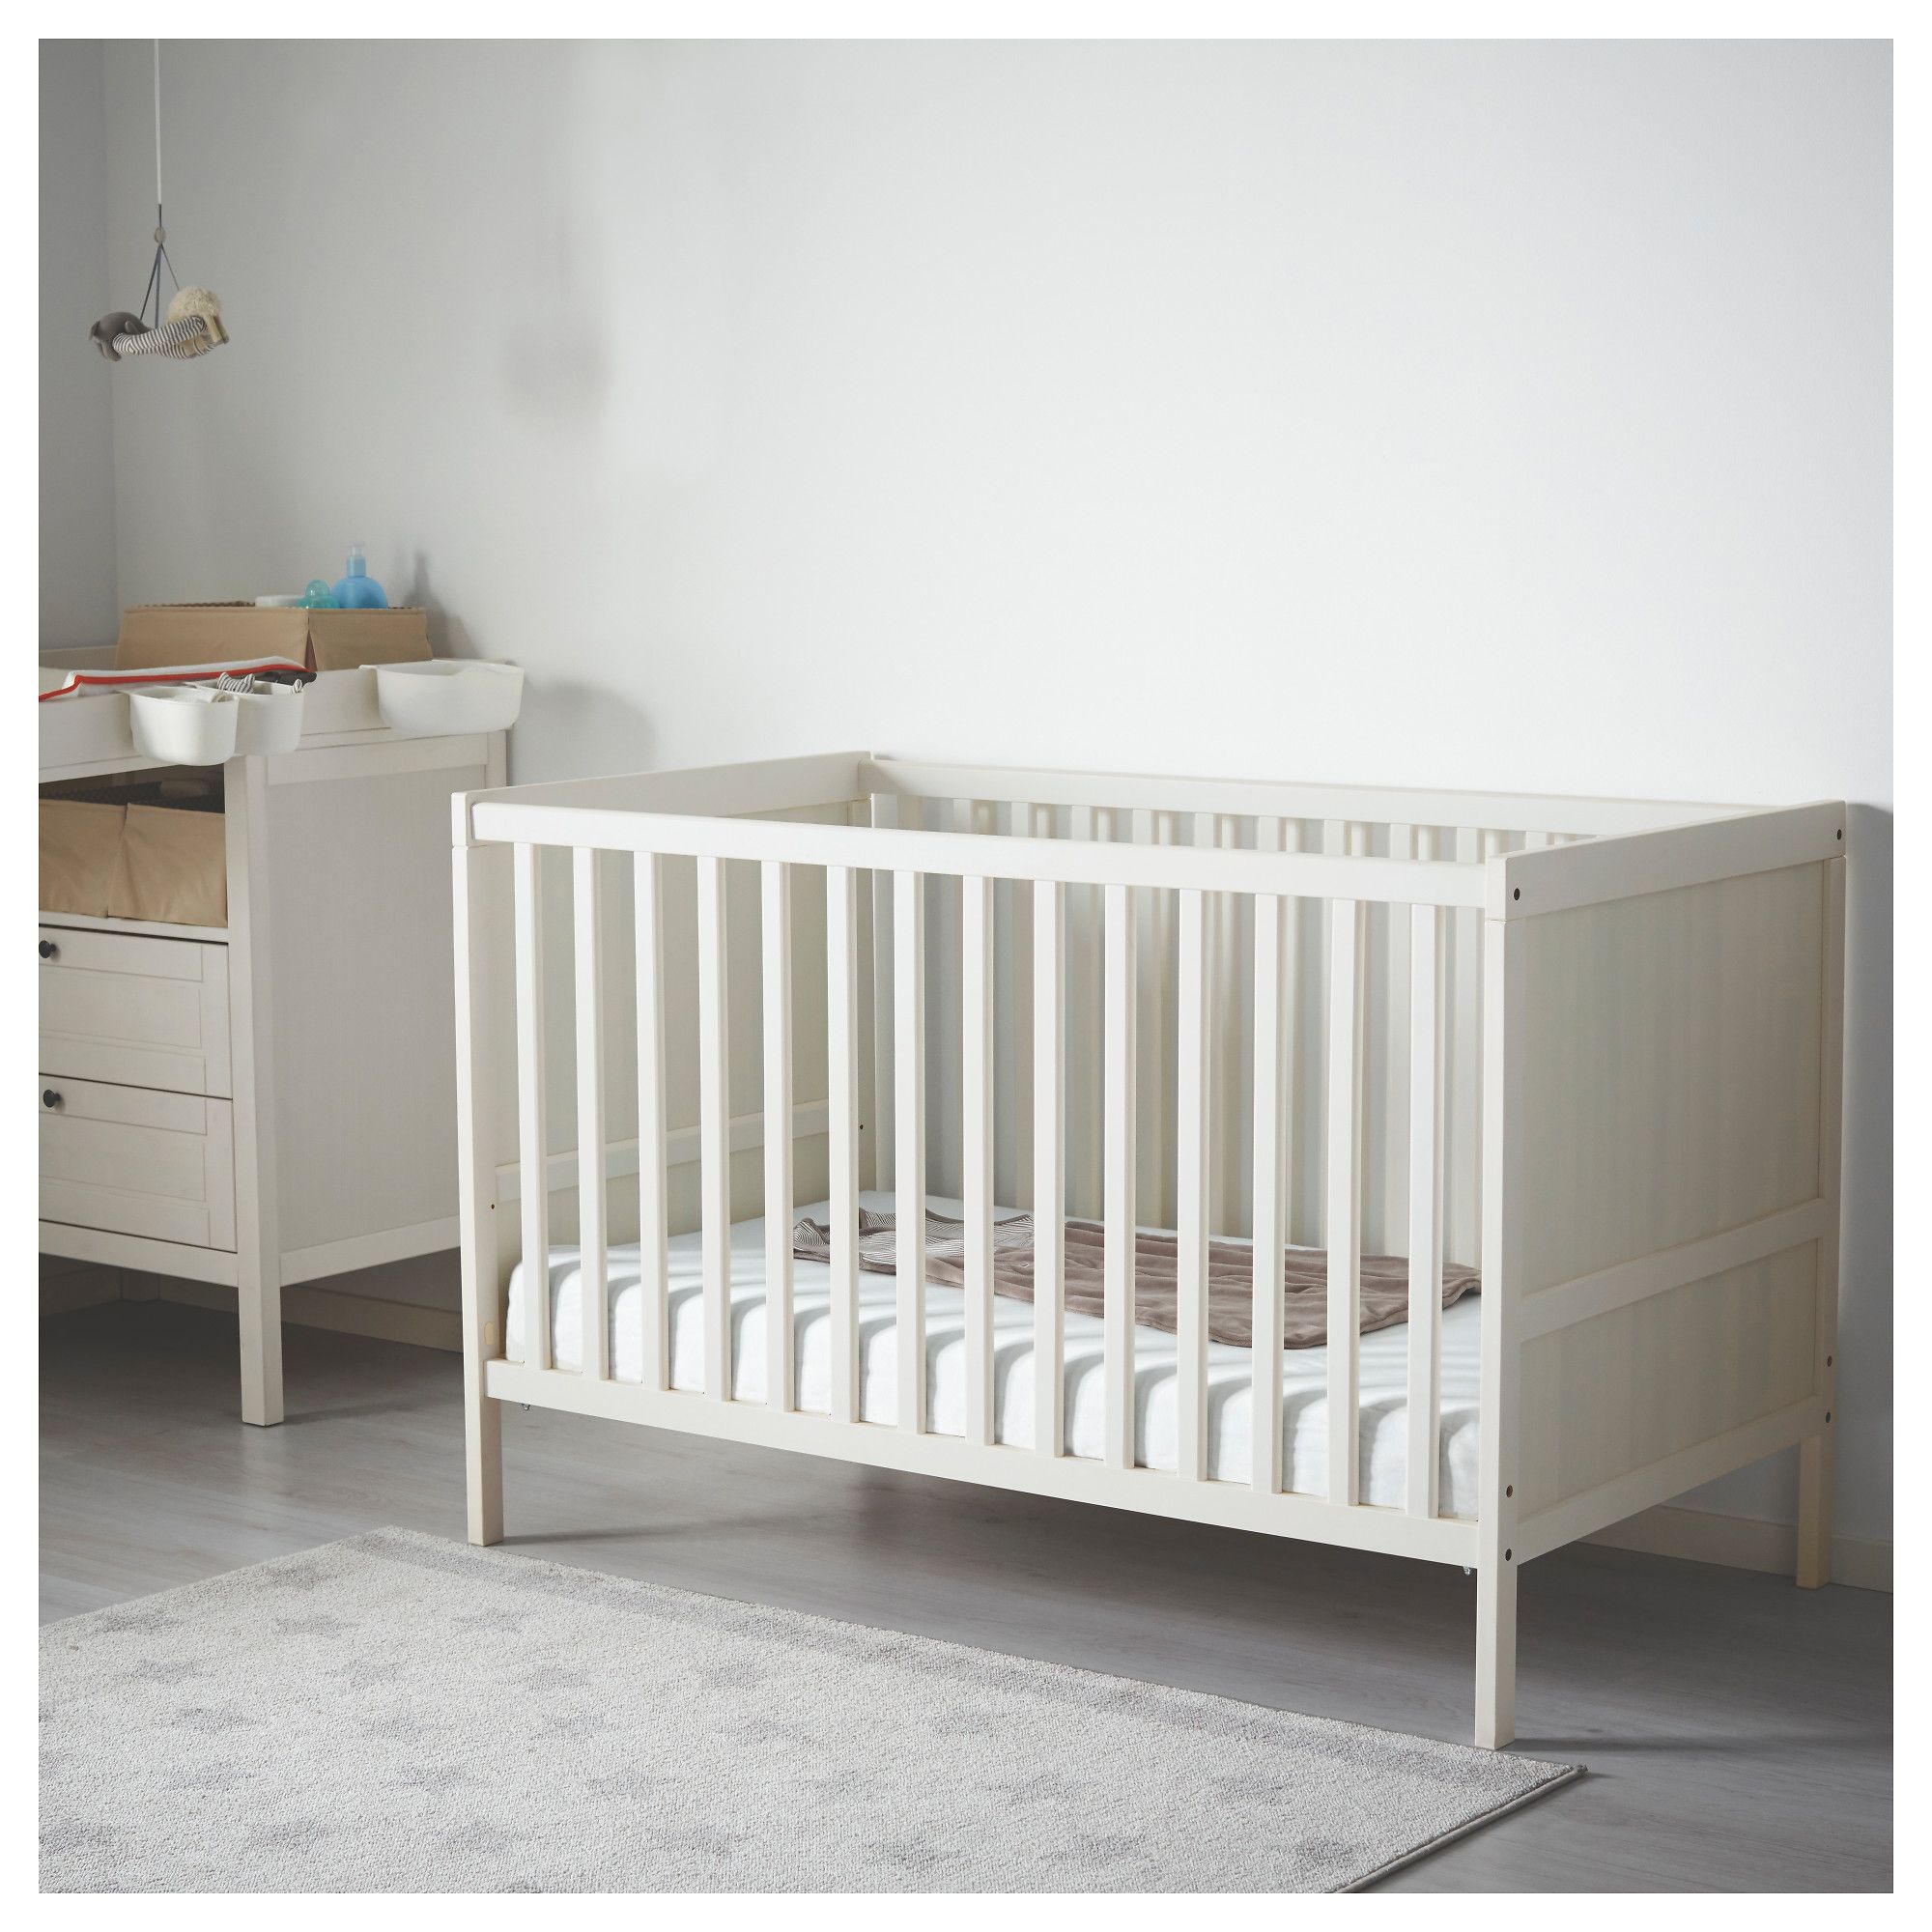 Furniture and Home Furnishings Products Ikea crib